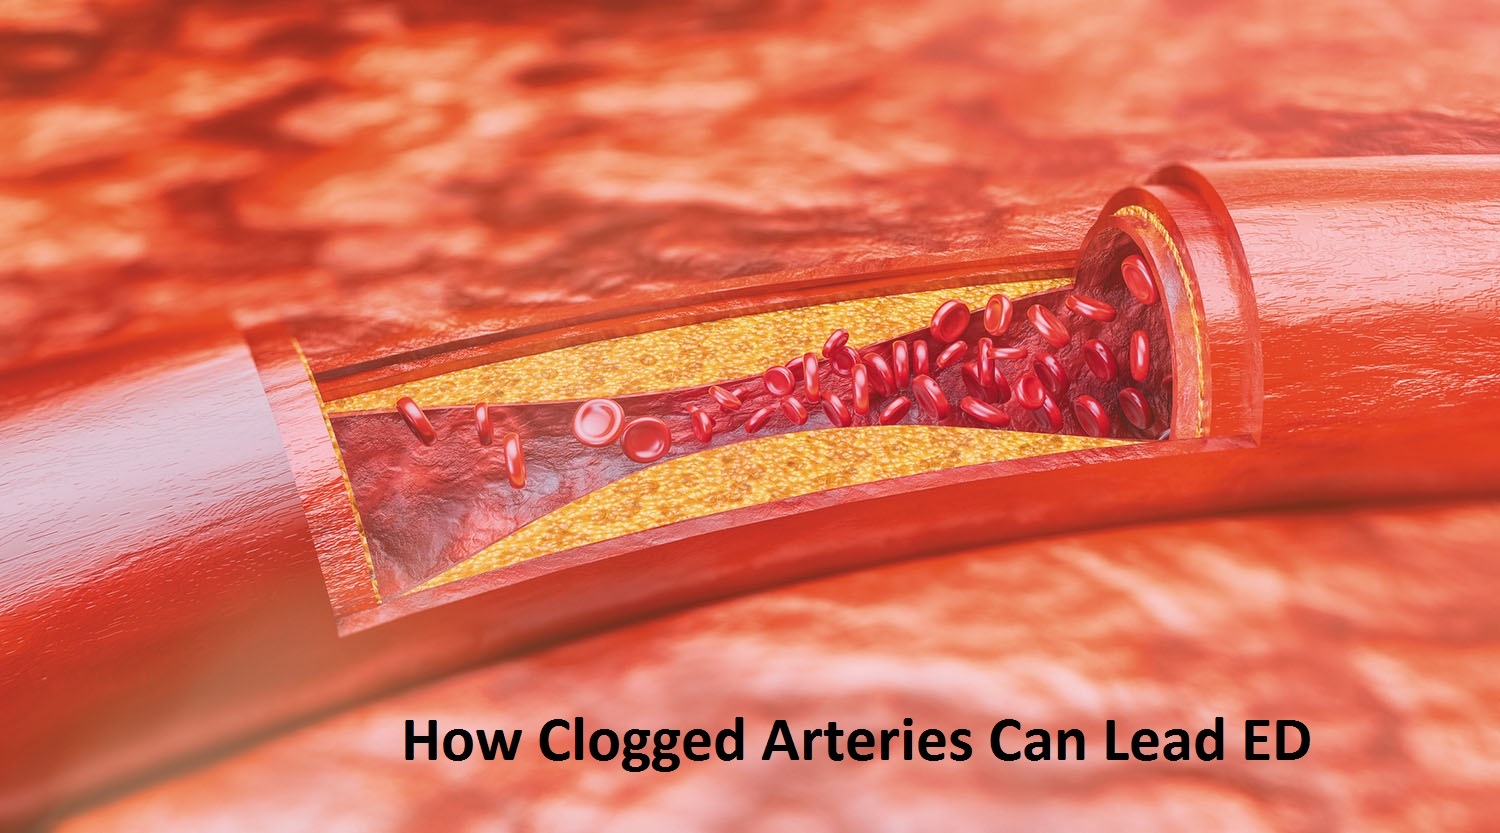 How Clogged Arteries Can Lead ED